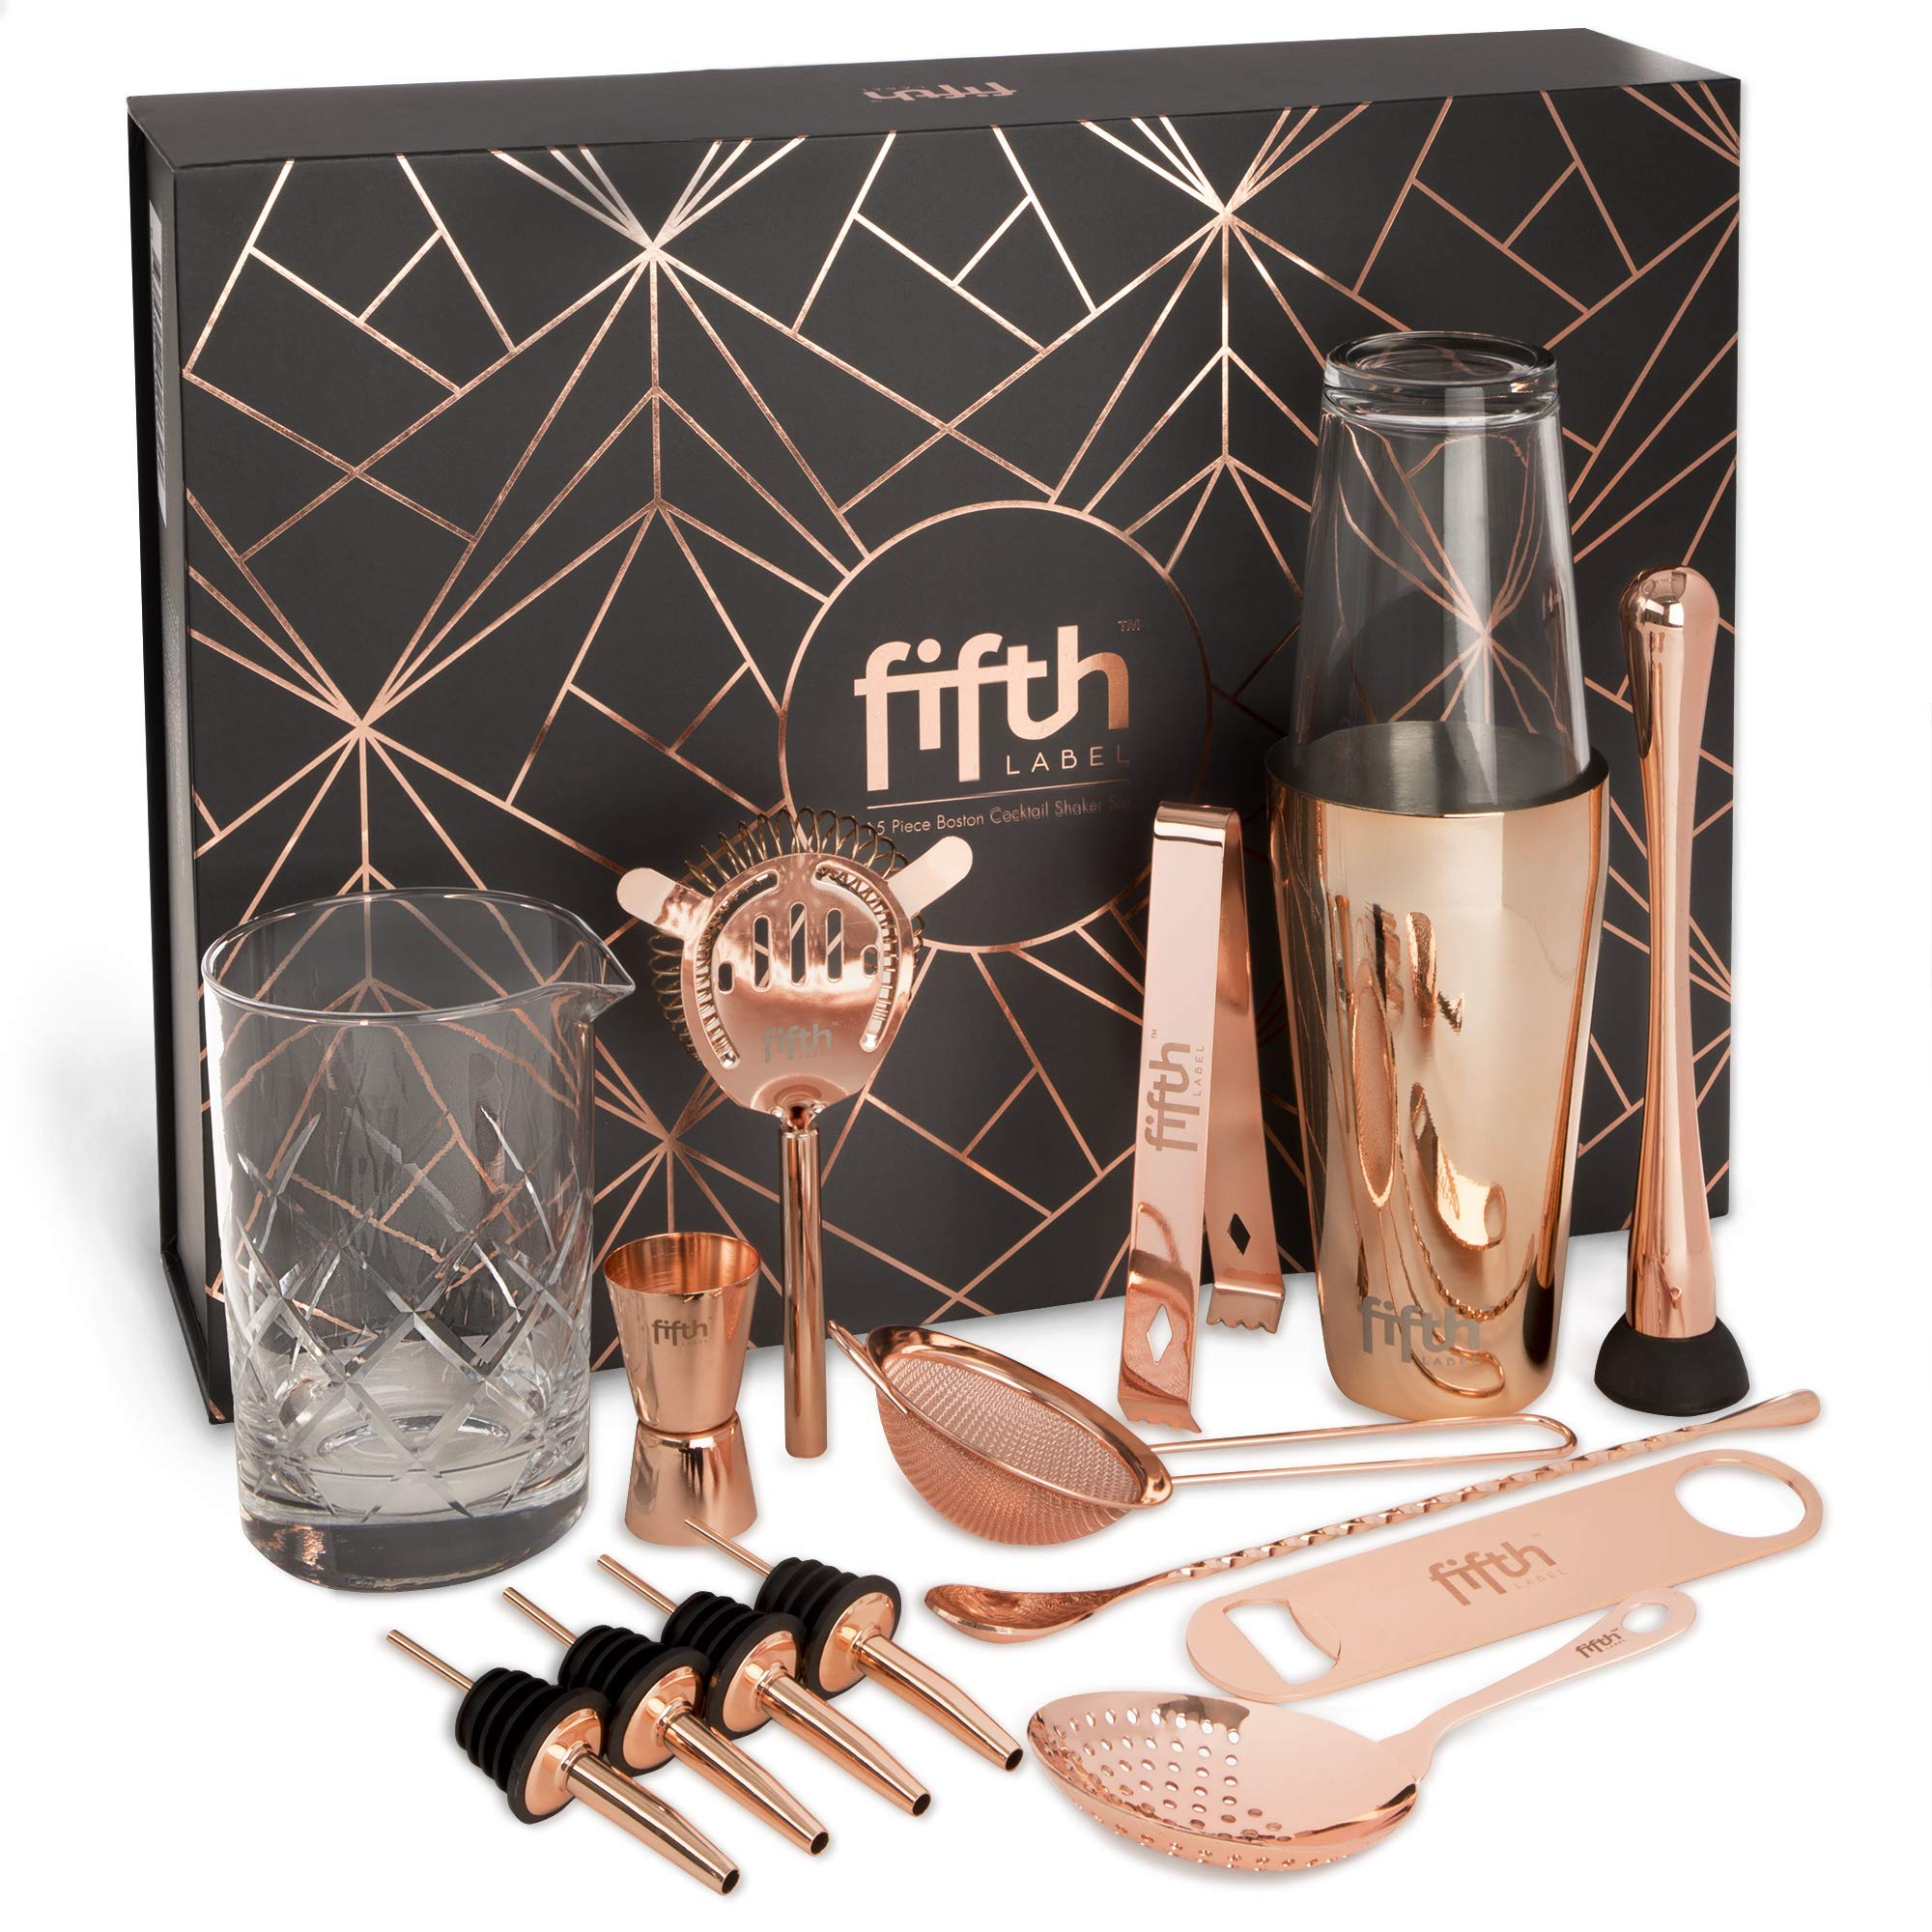 Copper Cocktail Shaker Set​ for Bar Kit, Stainless Steel ​& Glass - ​Complete​ 15 Piece ​Boston Bartending Mixology Kit​ with Tin Shakers, Strainers, Jigger, Muddler, and Accessories for Mixed Drinks by Fifth Label (Image #1)